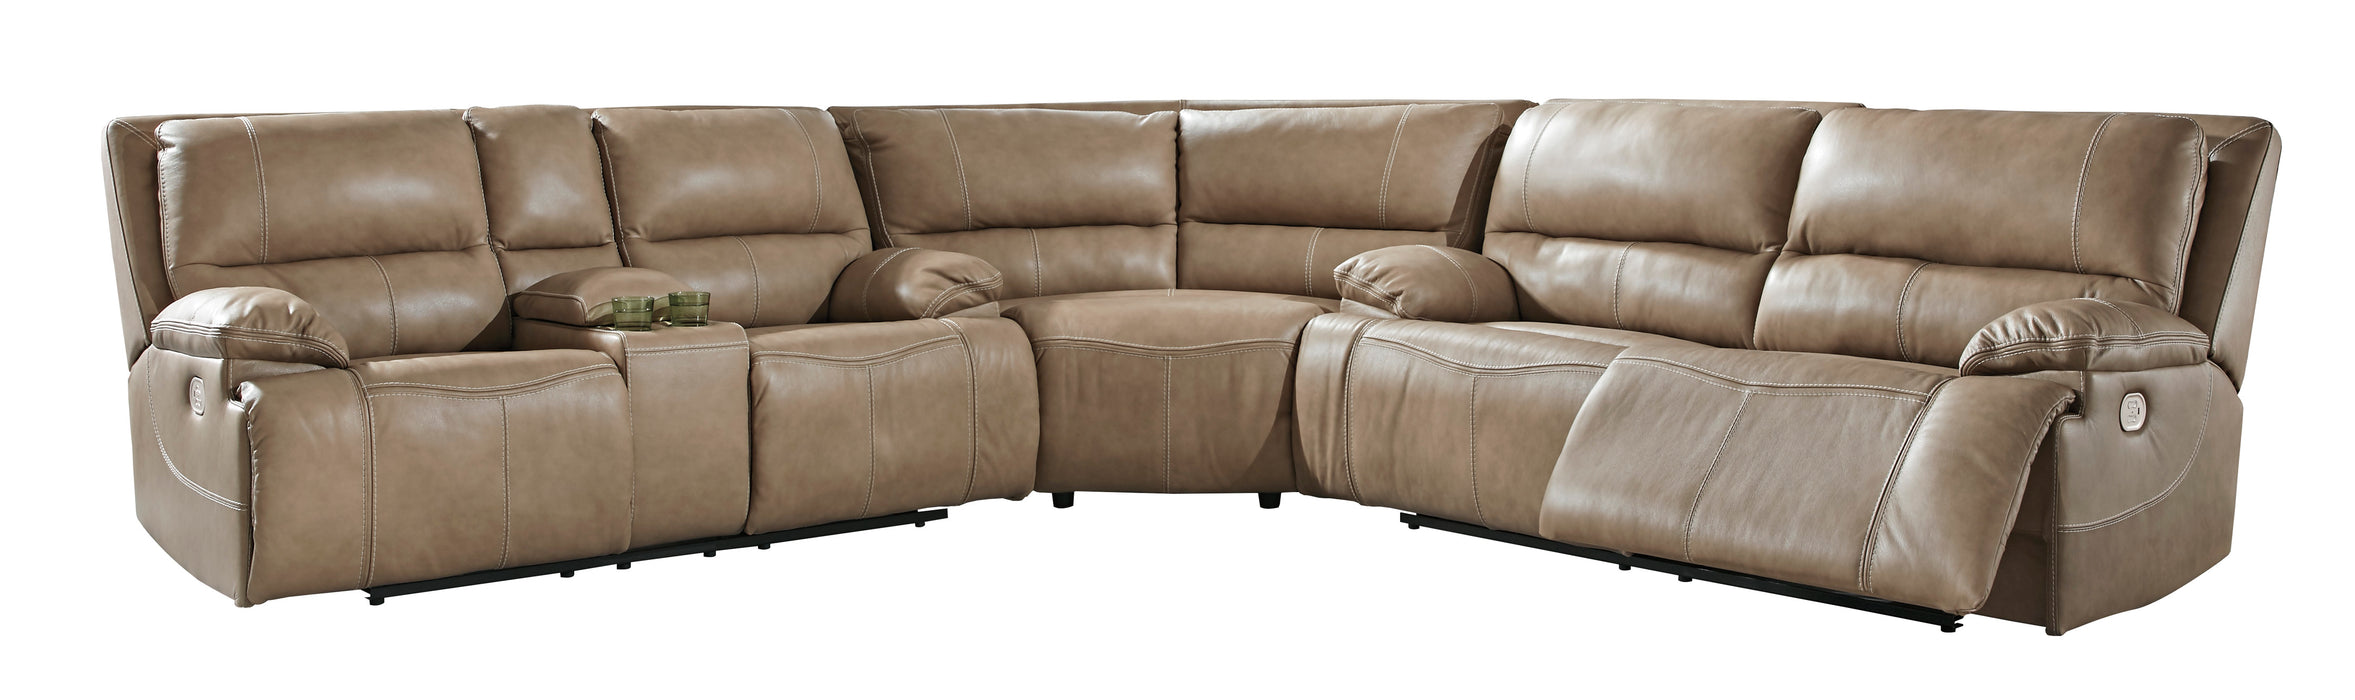 Ricmen Power Reclining Sectional  w/ Adjustable Headrest  - Genuine Leather - 3 Options